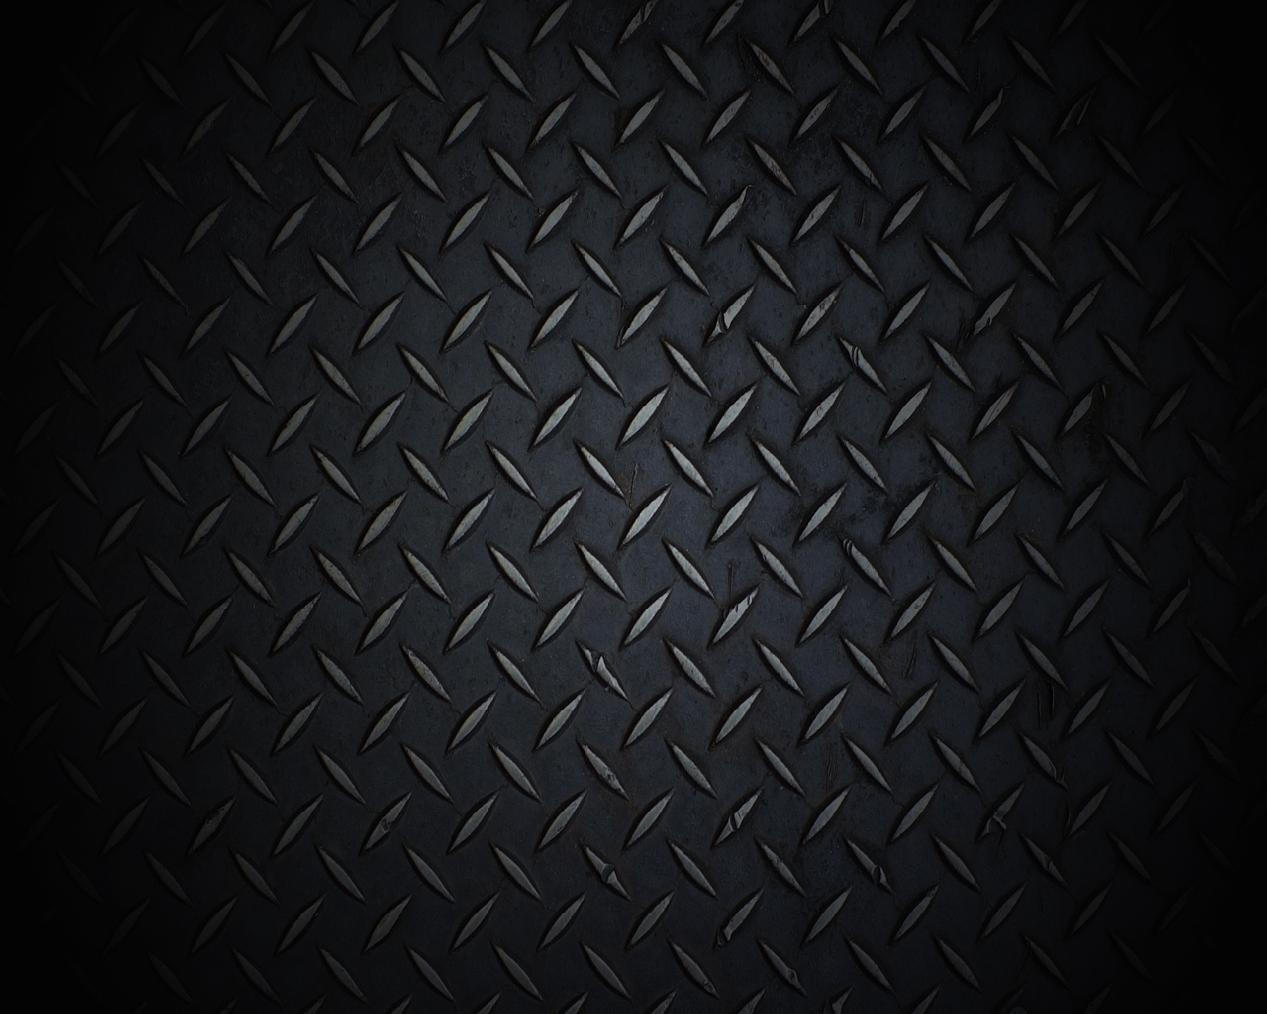 Fitness Background Images on Black Checkered Border